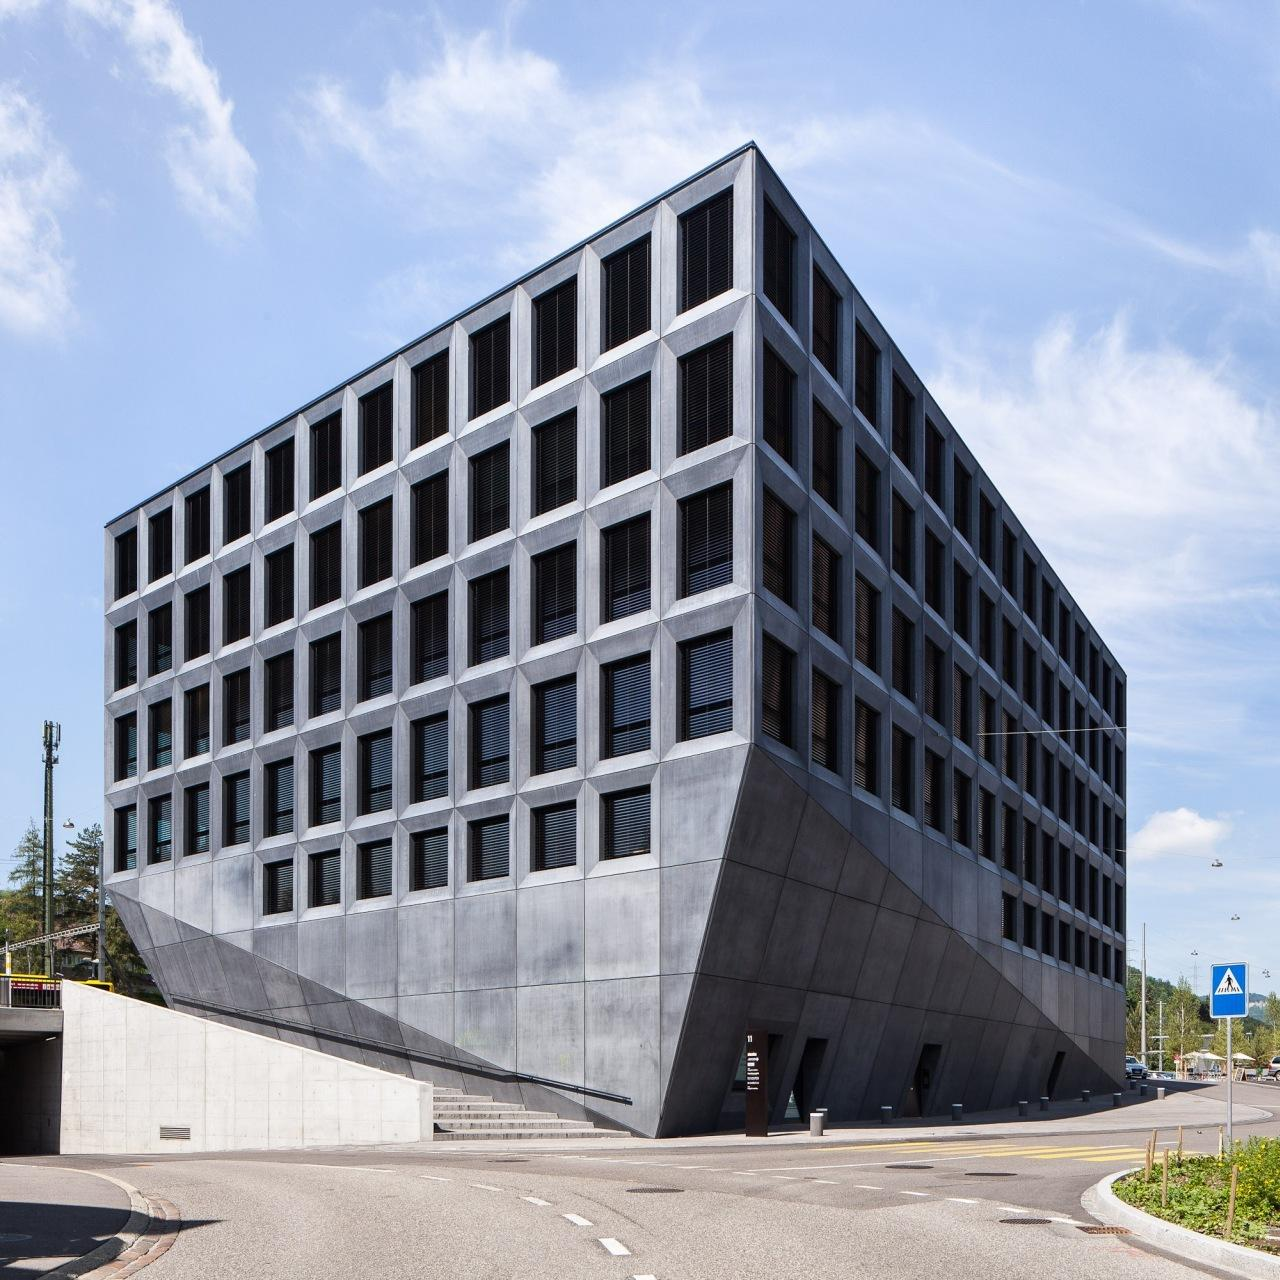 A f a s i a 63 christ gantenbein - Architecture of a building ...